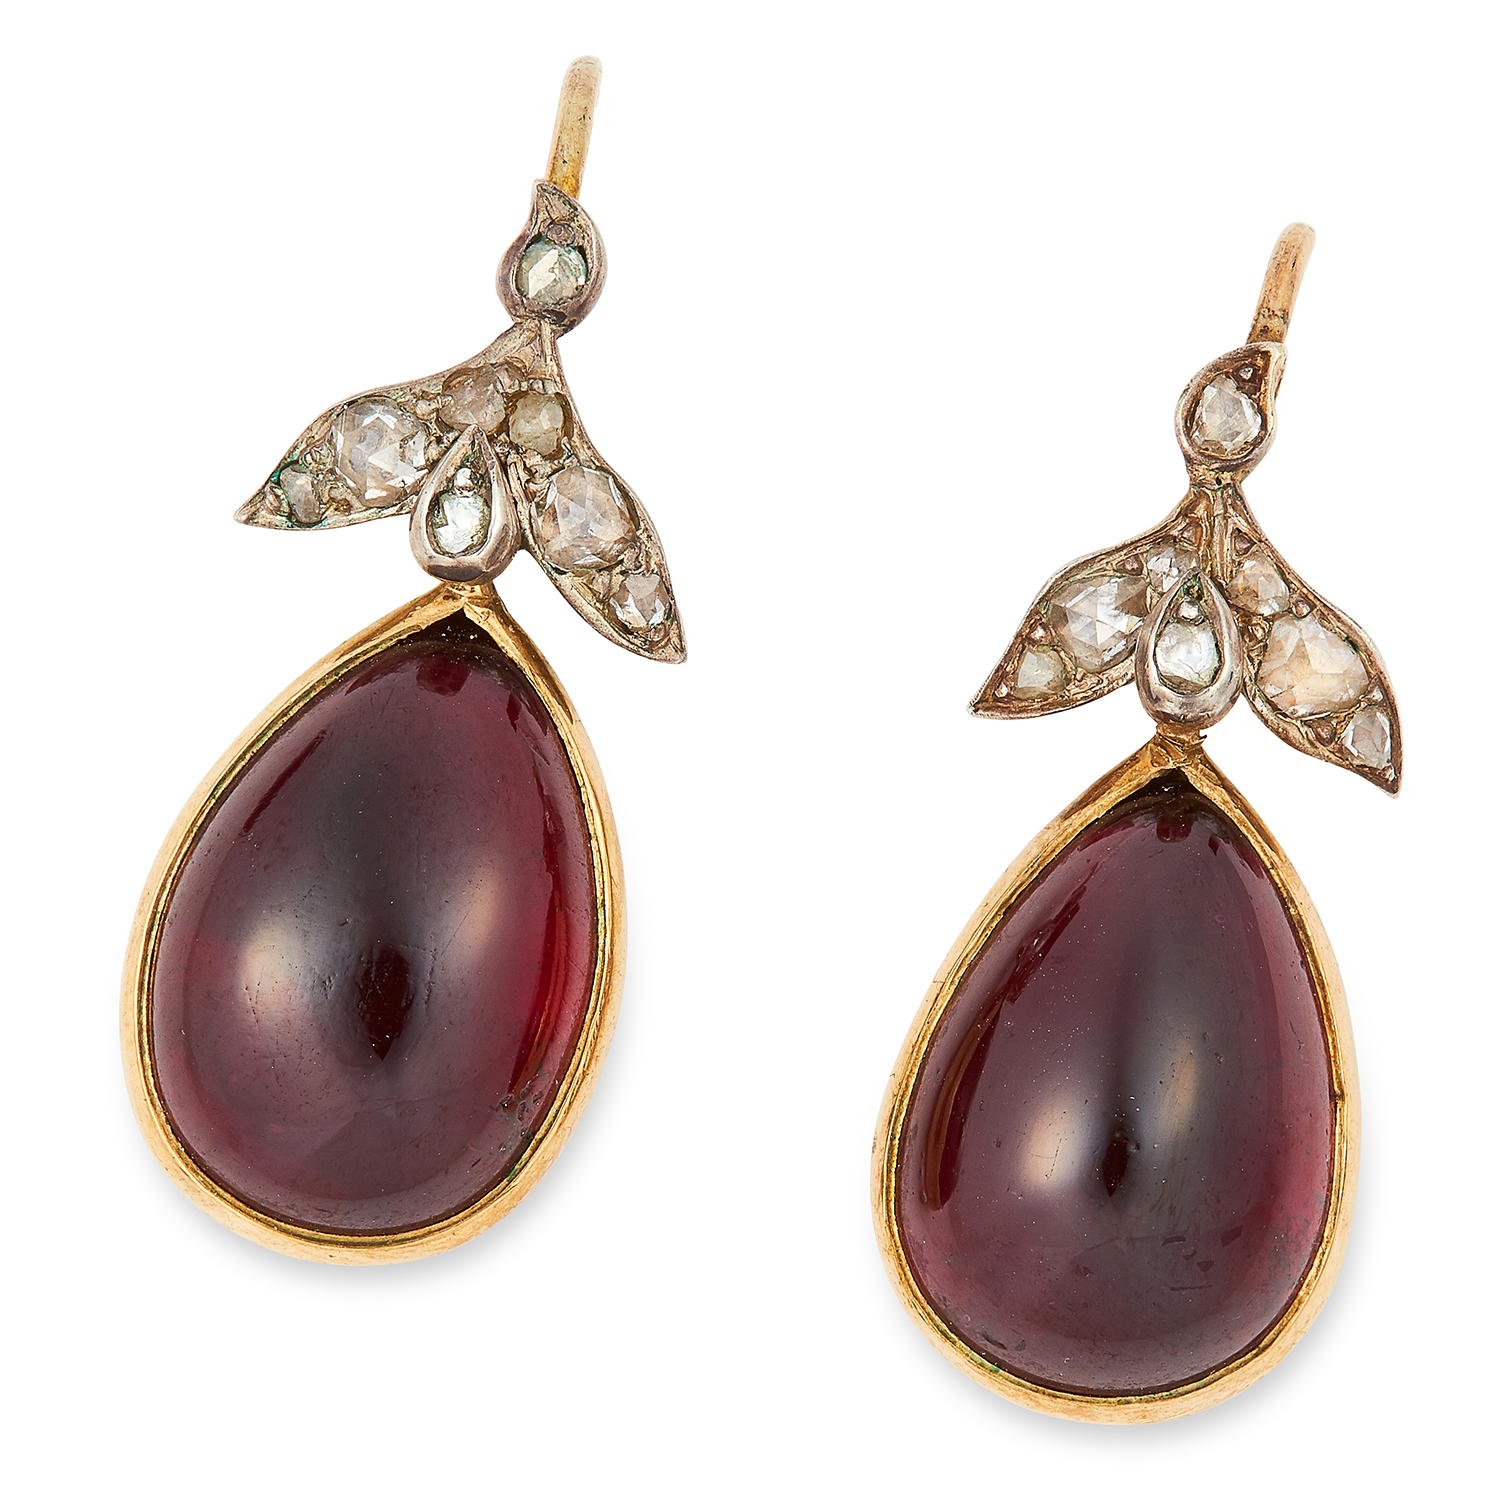 Los 45 - ANTIQUE VICTORIAN GARNET AND DIAMOND EARRINGS each set with cabochon garnet and rose cut diamonds,